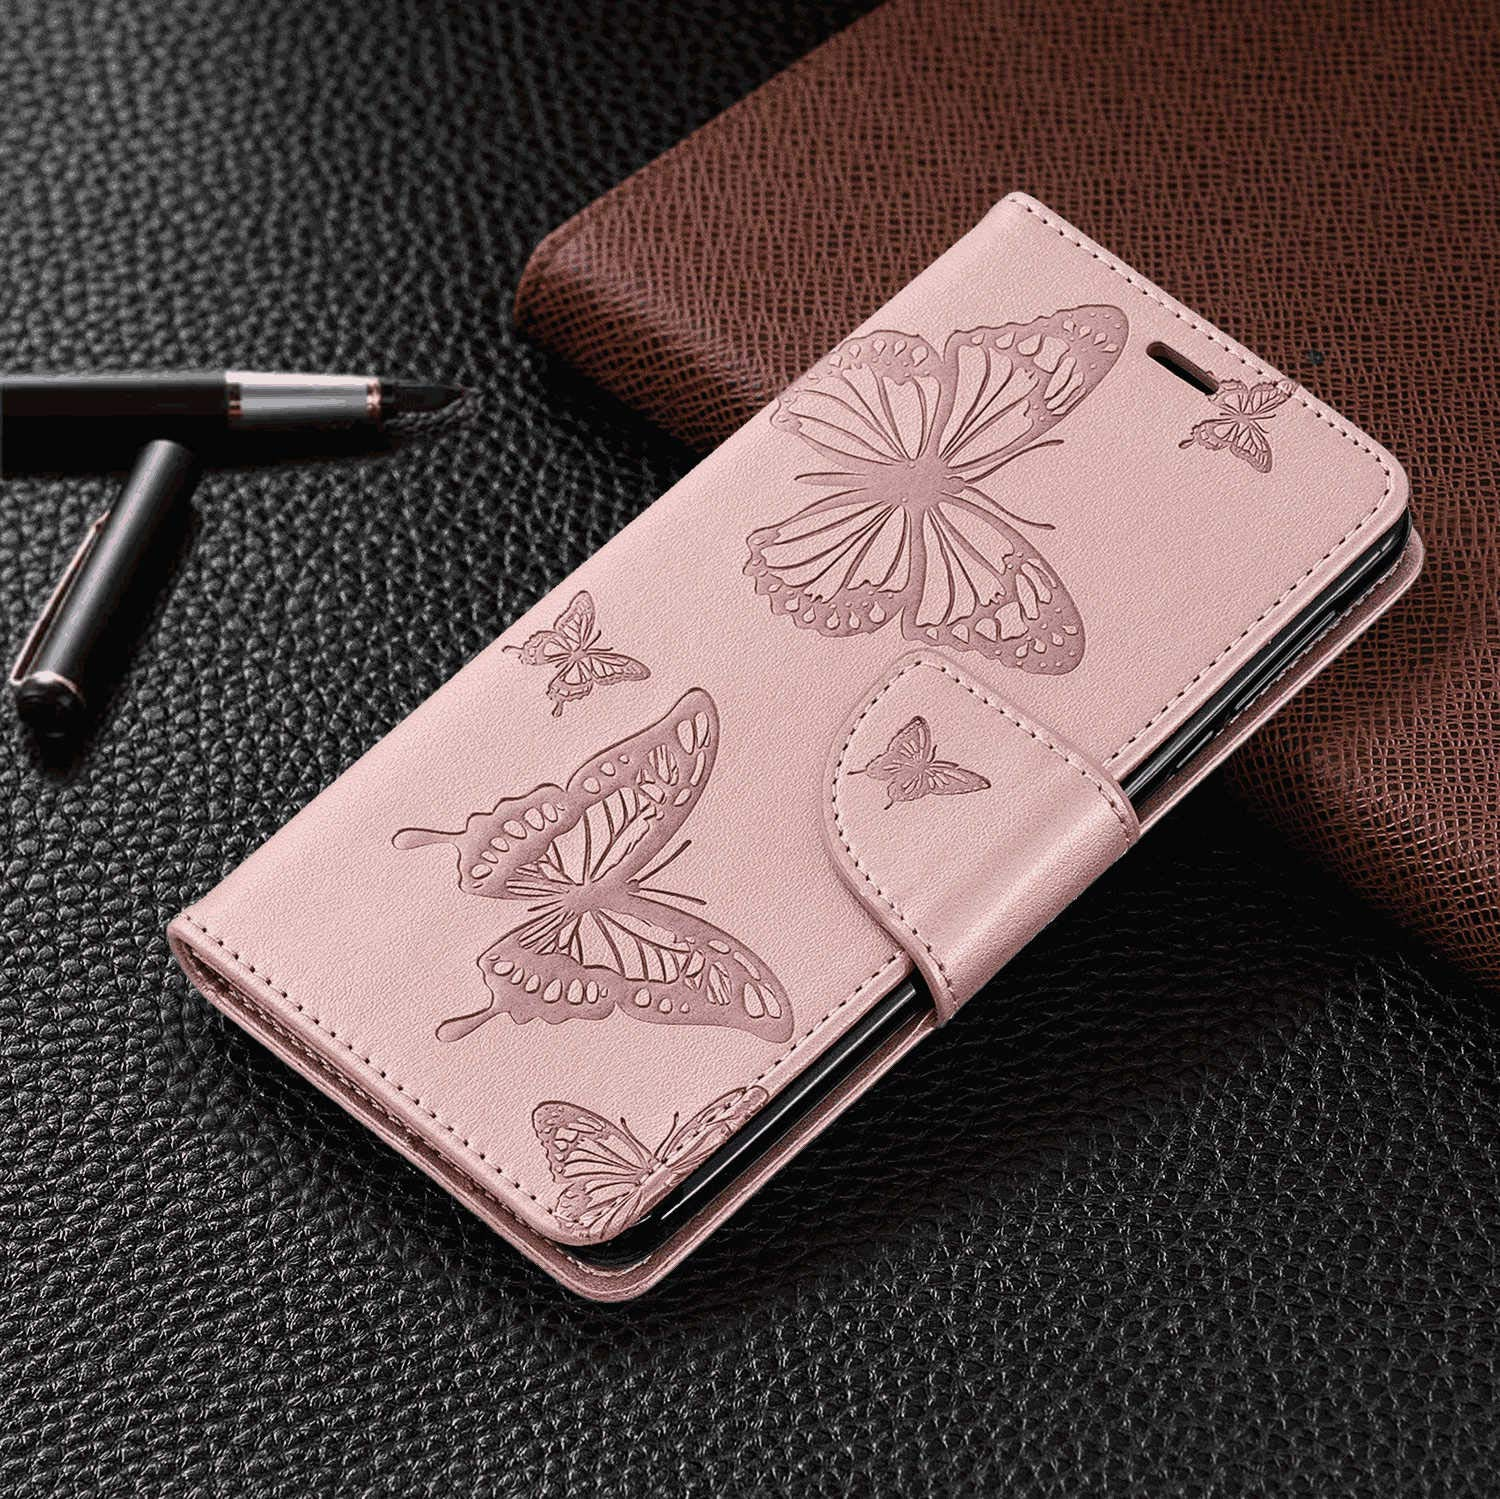 Cover for iPhone Xs Leather Card Holders Wallet case Extra-Protective Business Kickstand with Free Waterproof-Bag Delicate iPhone Xs Flip Case